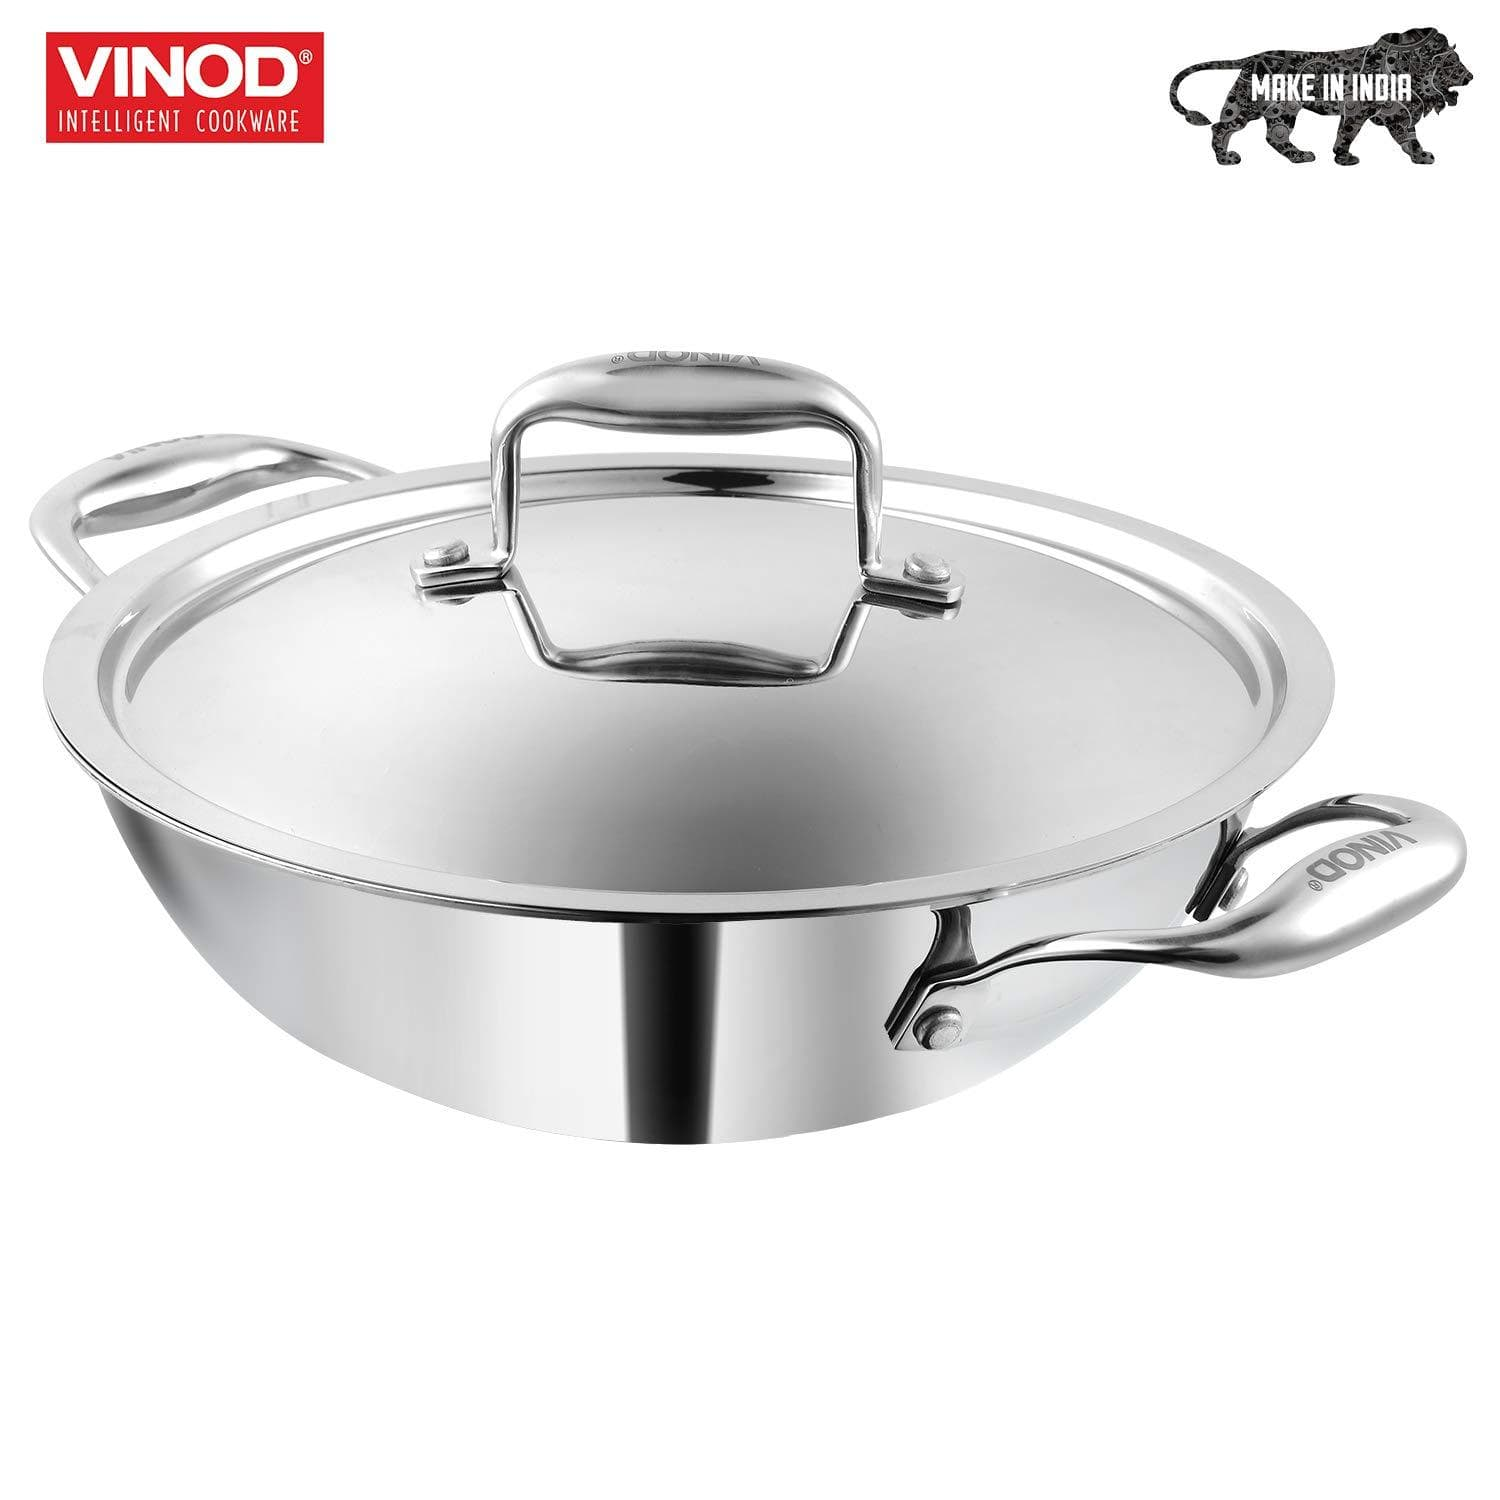 Vinod Platinum Triply Stainless Steel Kadai with Lid 22cm 1.8Ltr. 827016301743